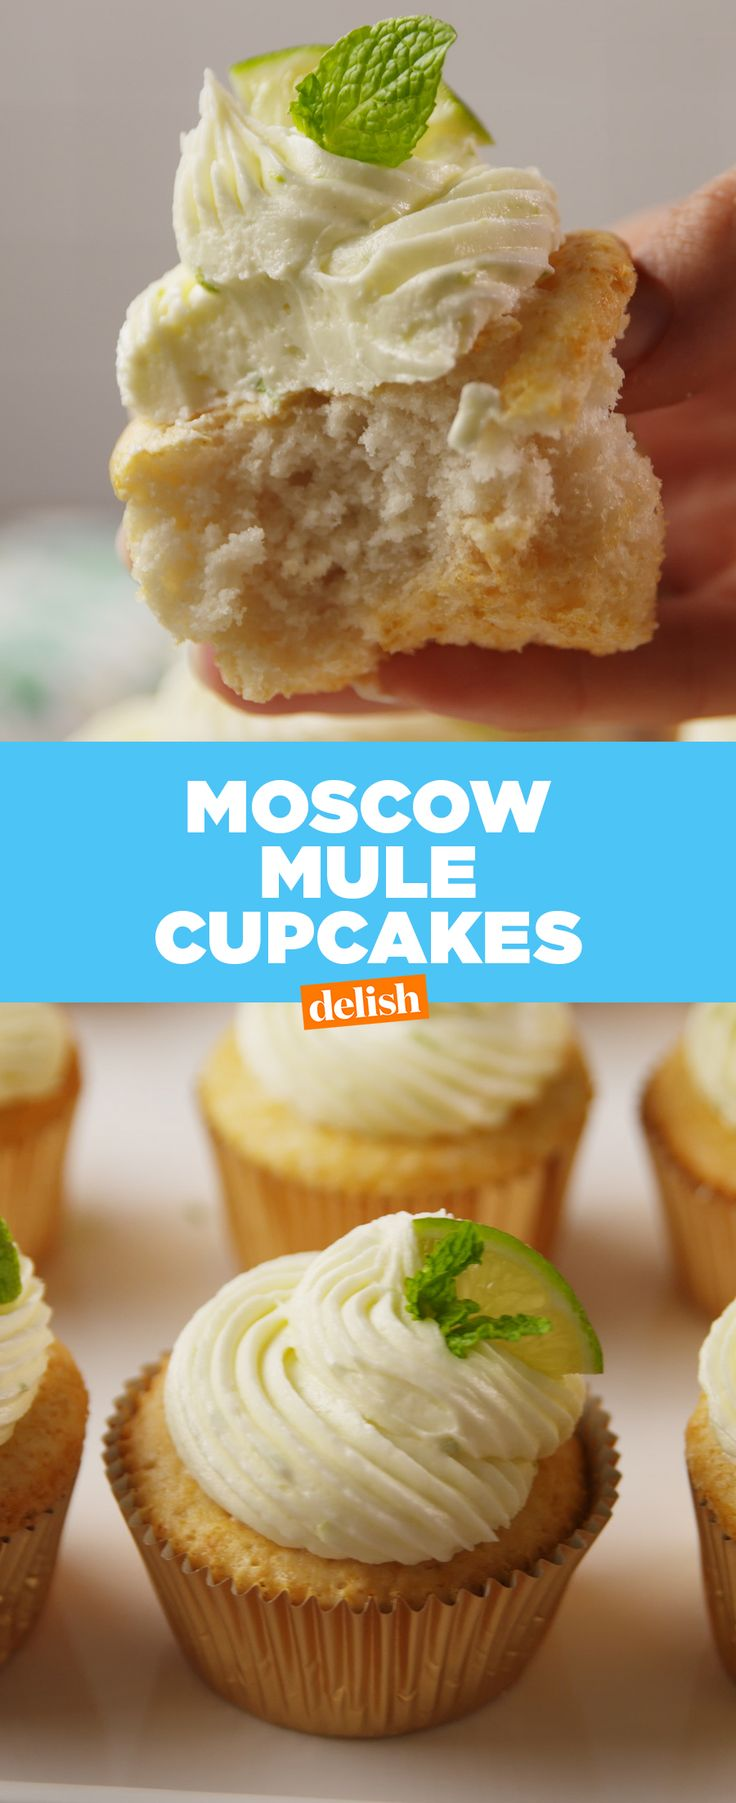 Moscow Mule fans, how many of these cupcakes are you throwing back?! Get the recipe at Delish.com.